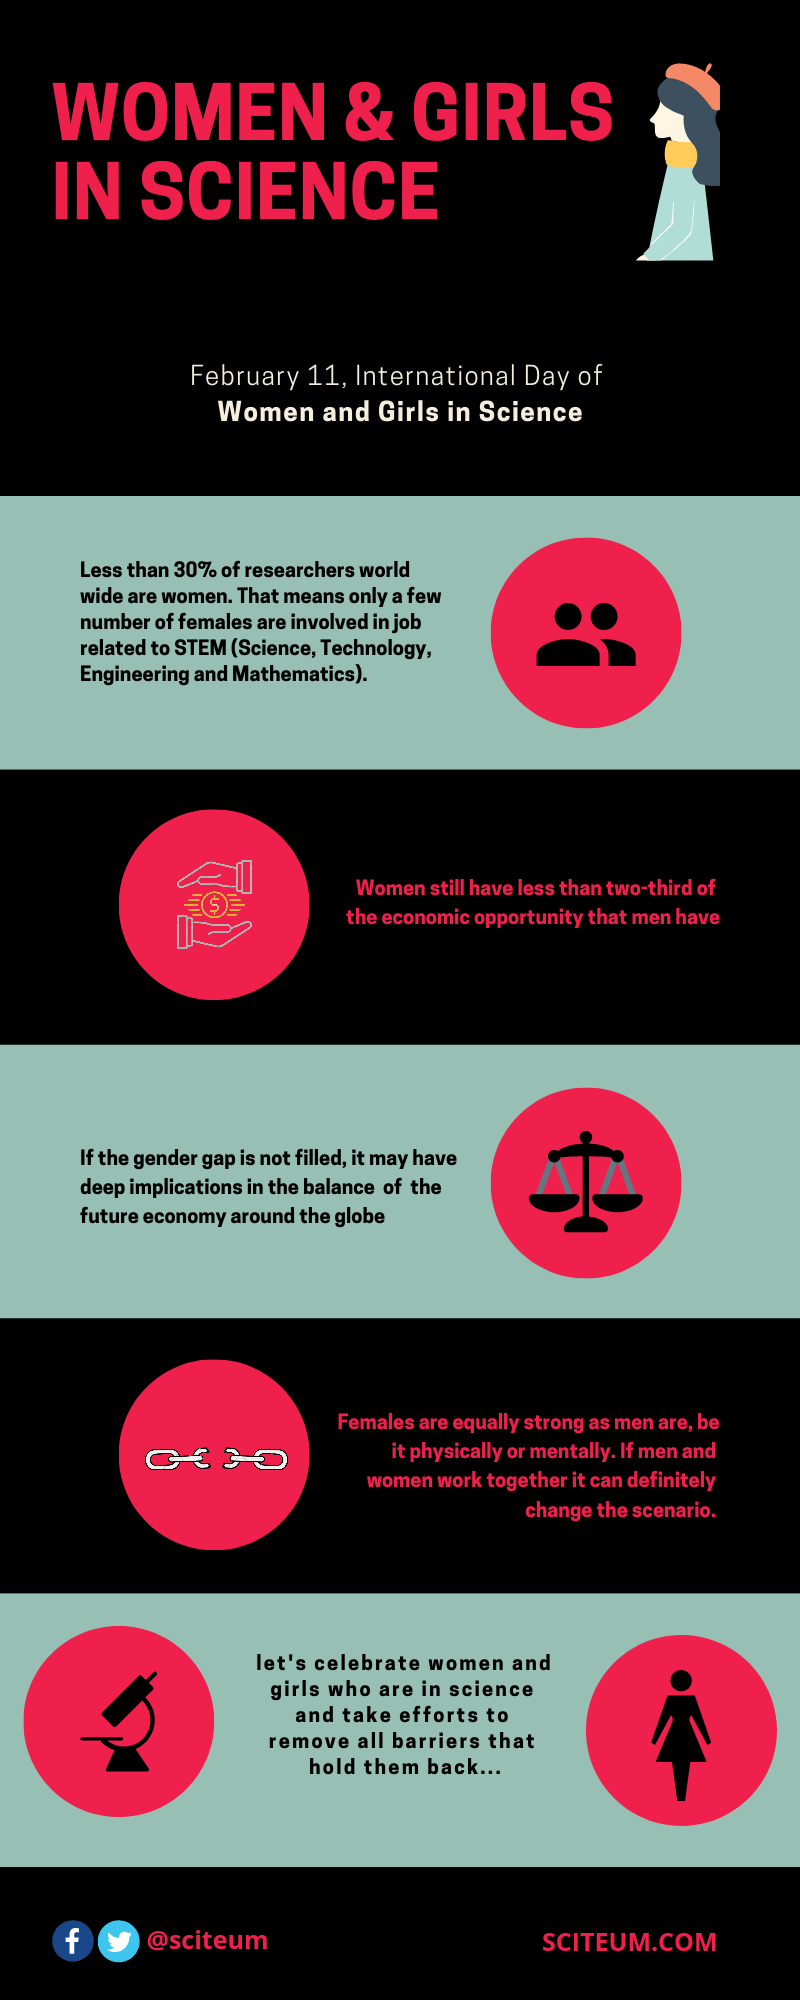 Celebrating International Day for Women and Girls in Science with an info-graphic detailing the importance of female in science